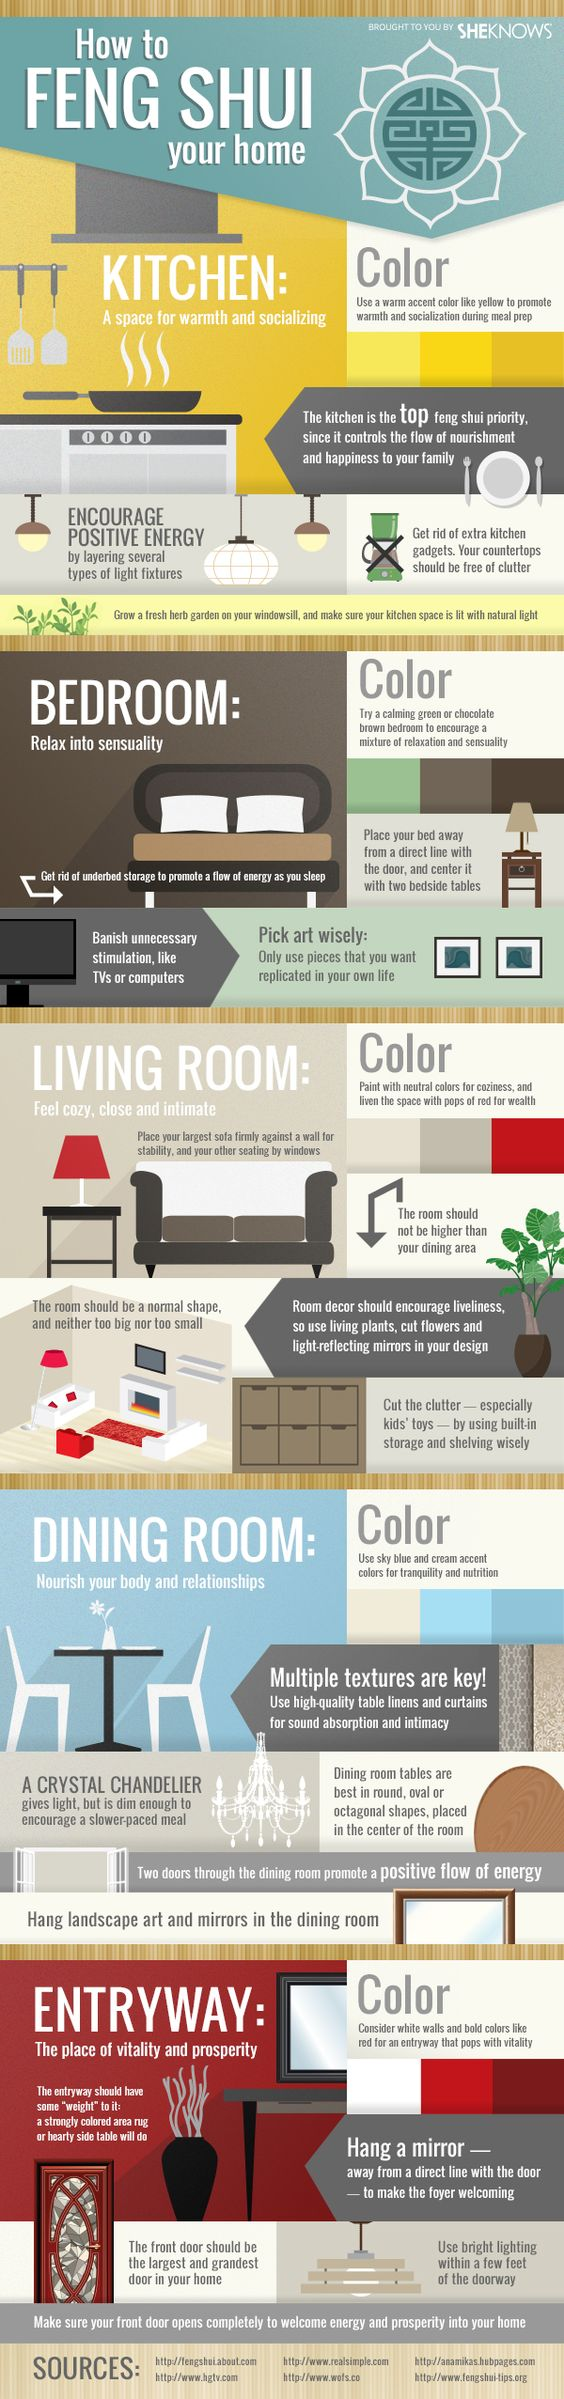 How to feng shui your home to improve your mental, physical health ...